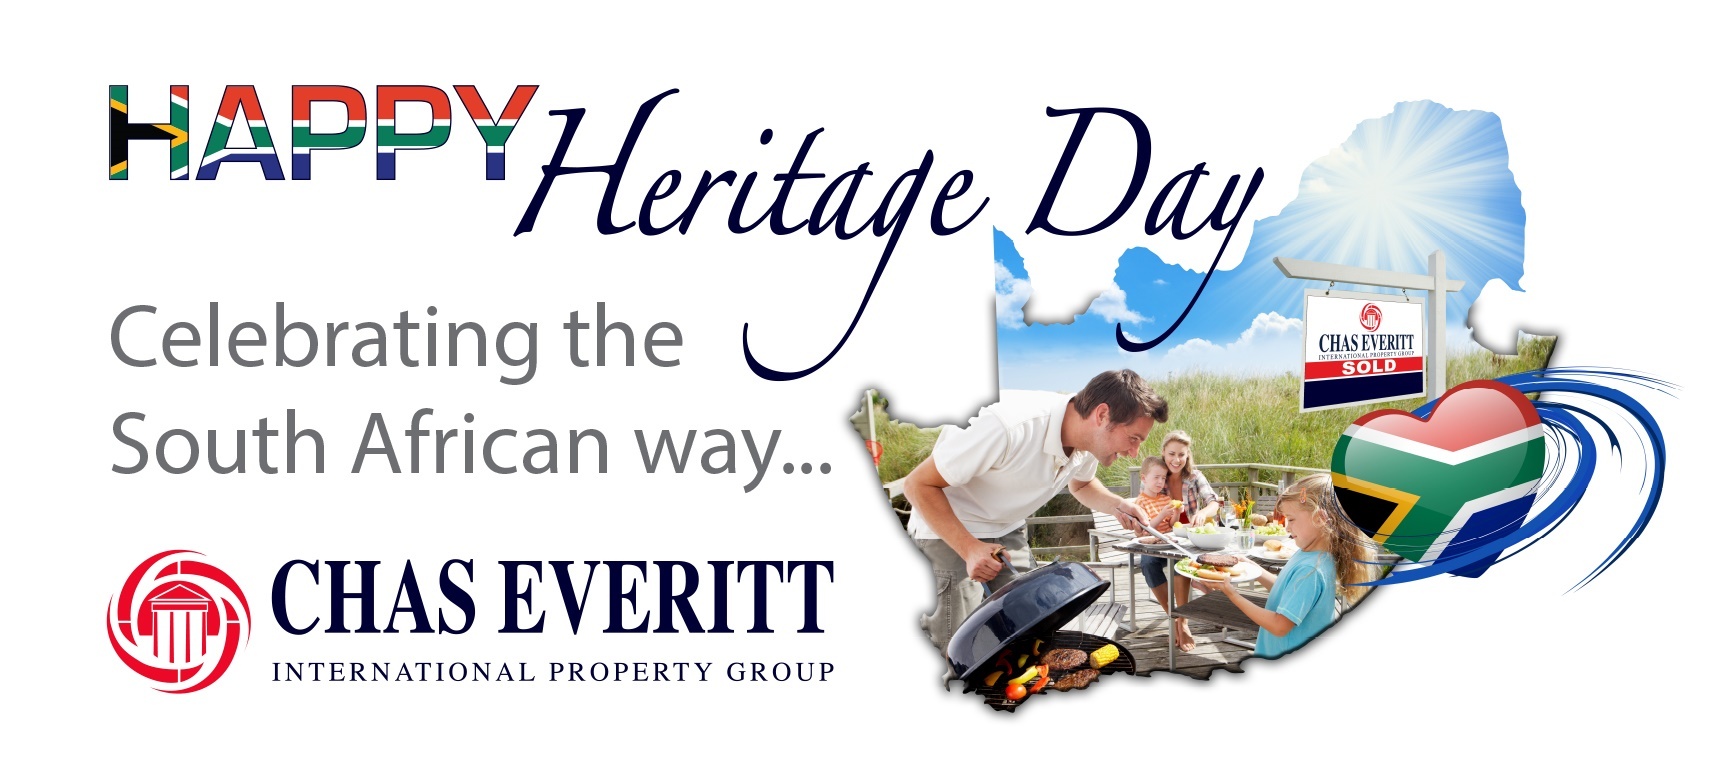 Wishing you South African Pride this Heritage Day